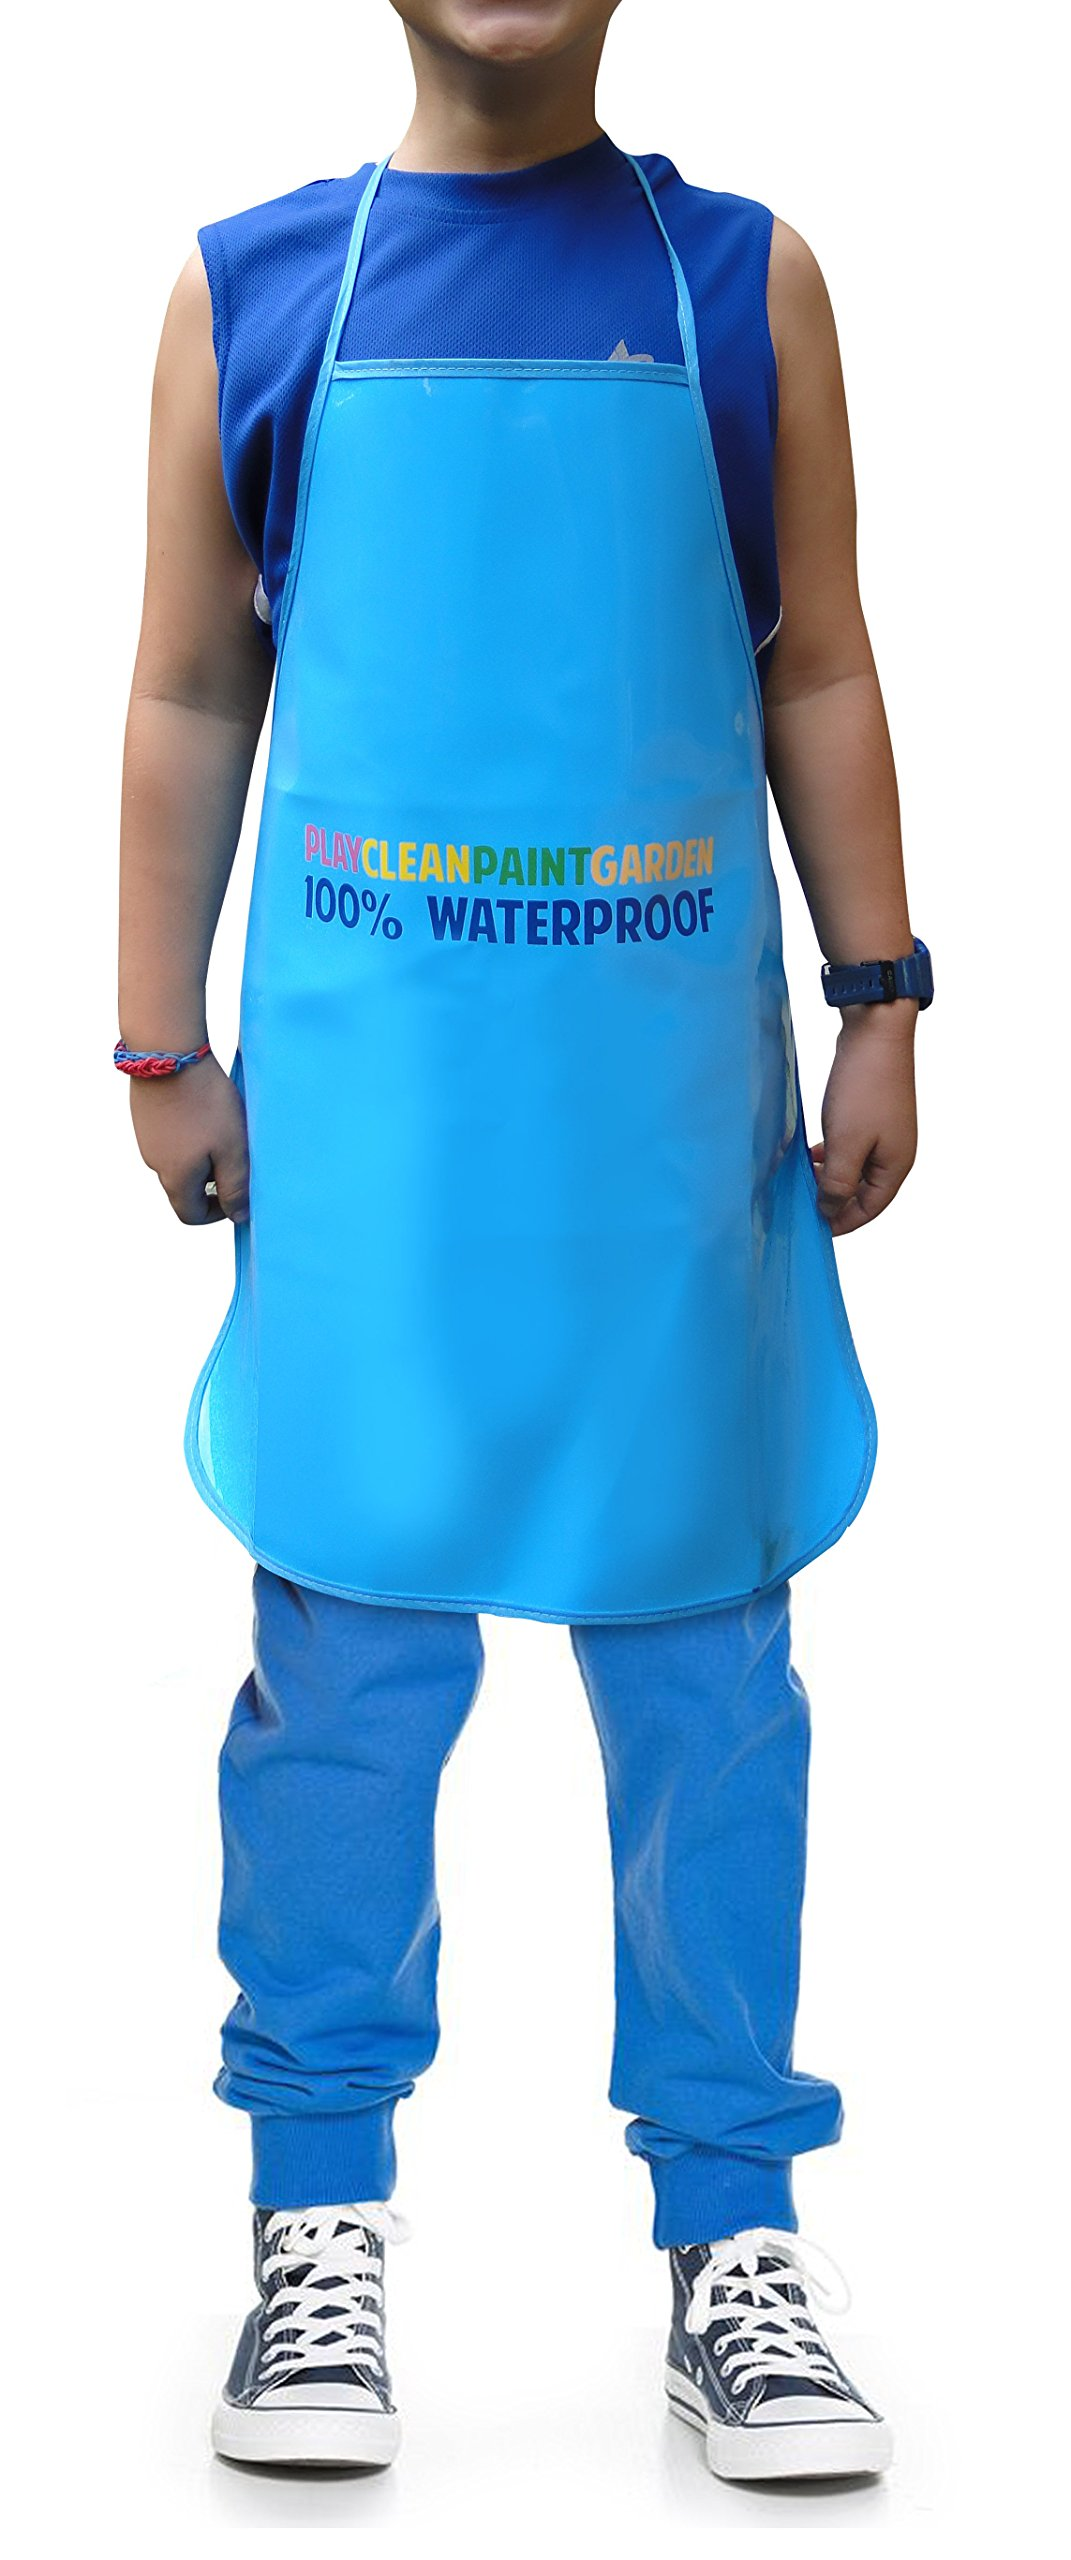 Children's Artists Aprons Heavy Duty Reusable PVC Waterproof Apron - Great for Cooking, Classroom, Playing, Community Events, Art & Crafts, Painting and More